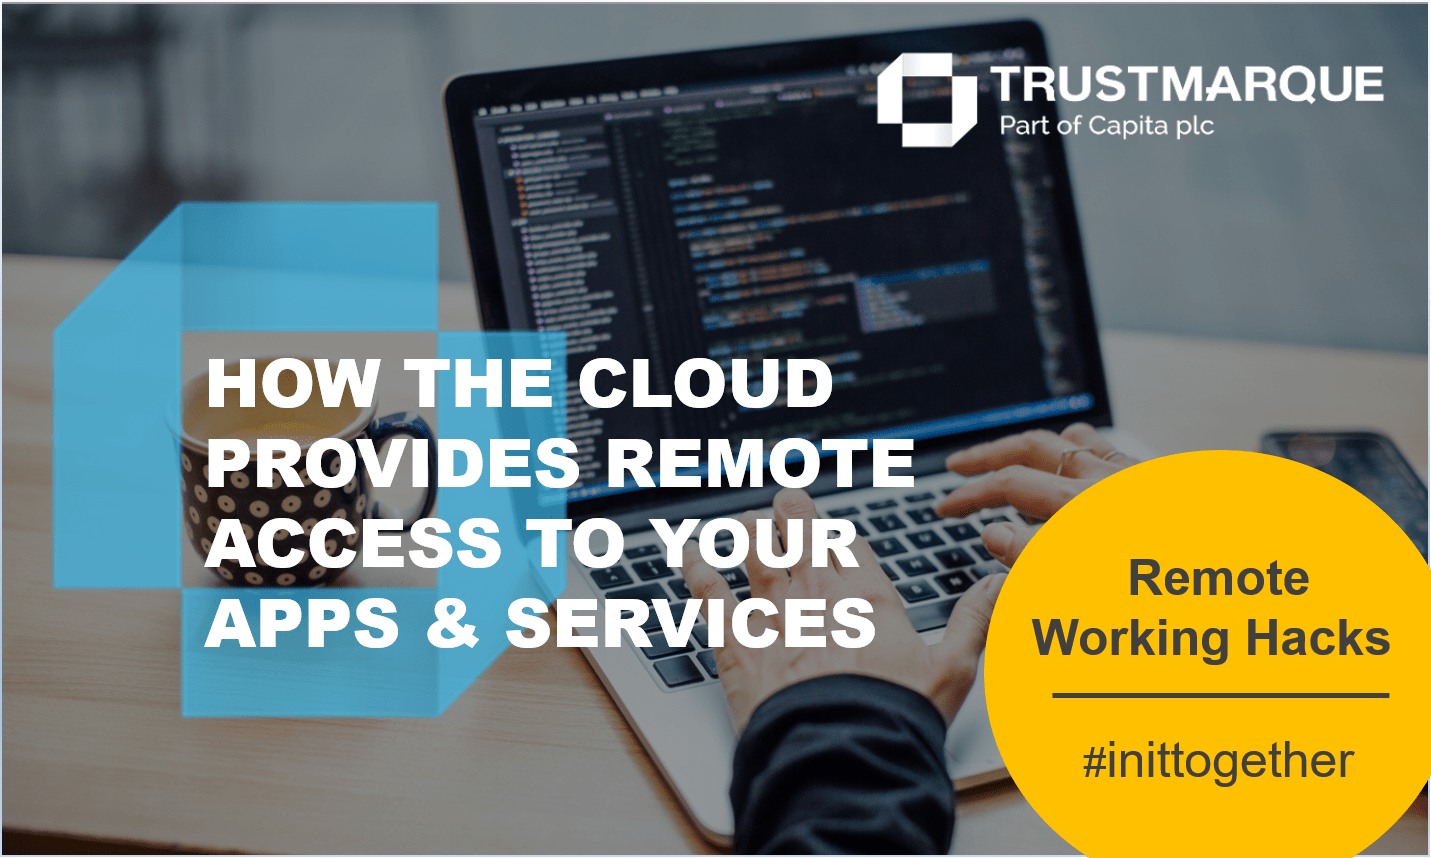 Remote Working Hacks, cloud remote access